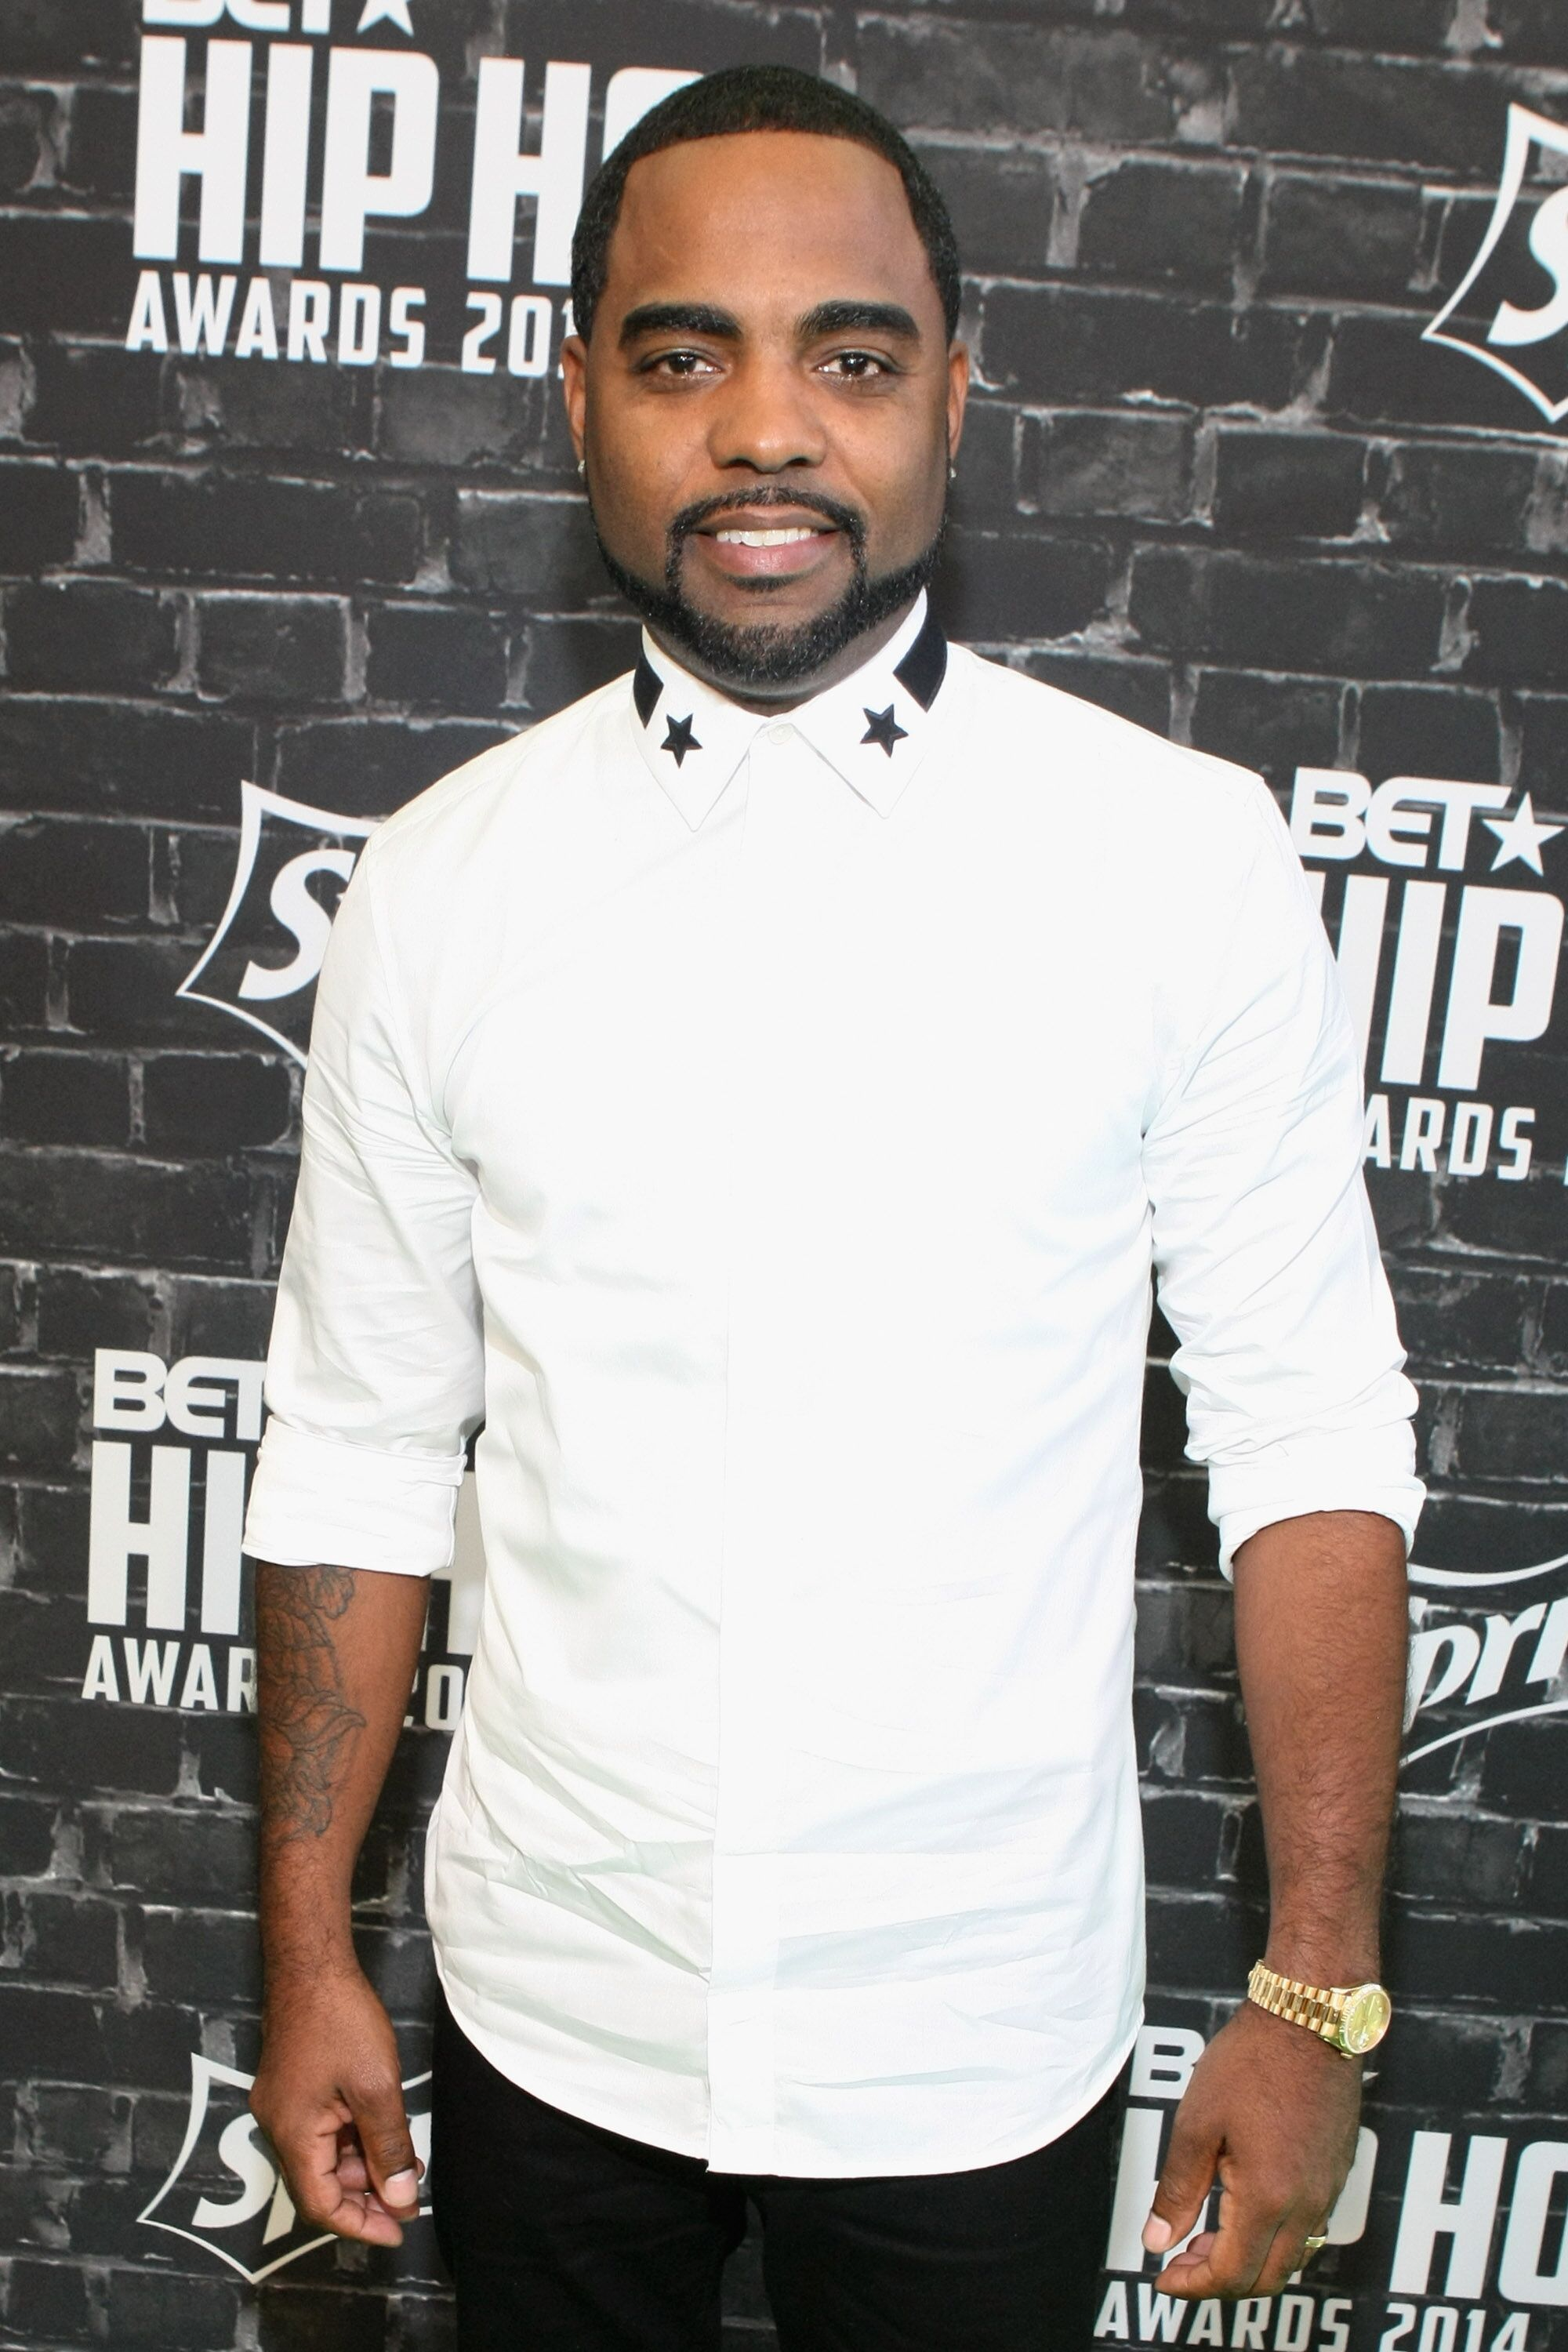 Todd Tucker attends the BET Hip Hop Awards on September 20, 2014 in Atlanta, Georgia | Photo: Getty Images